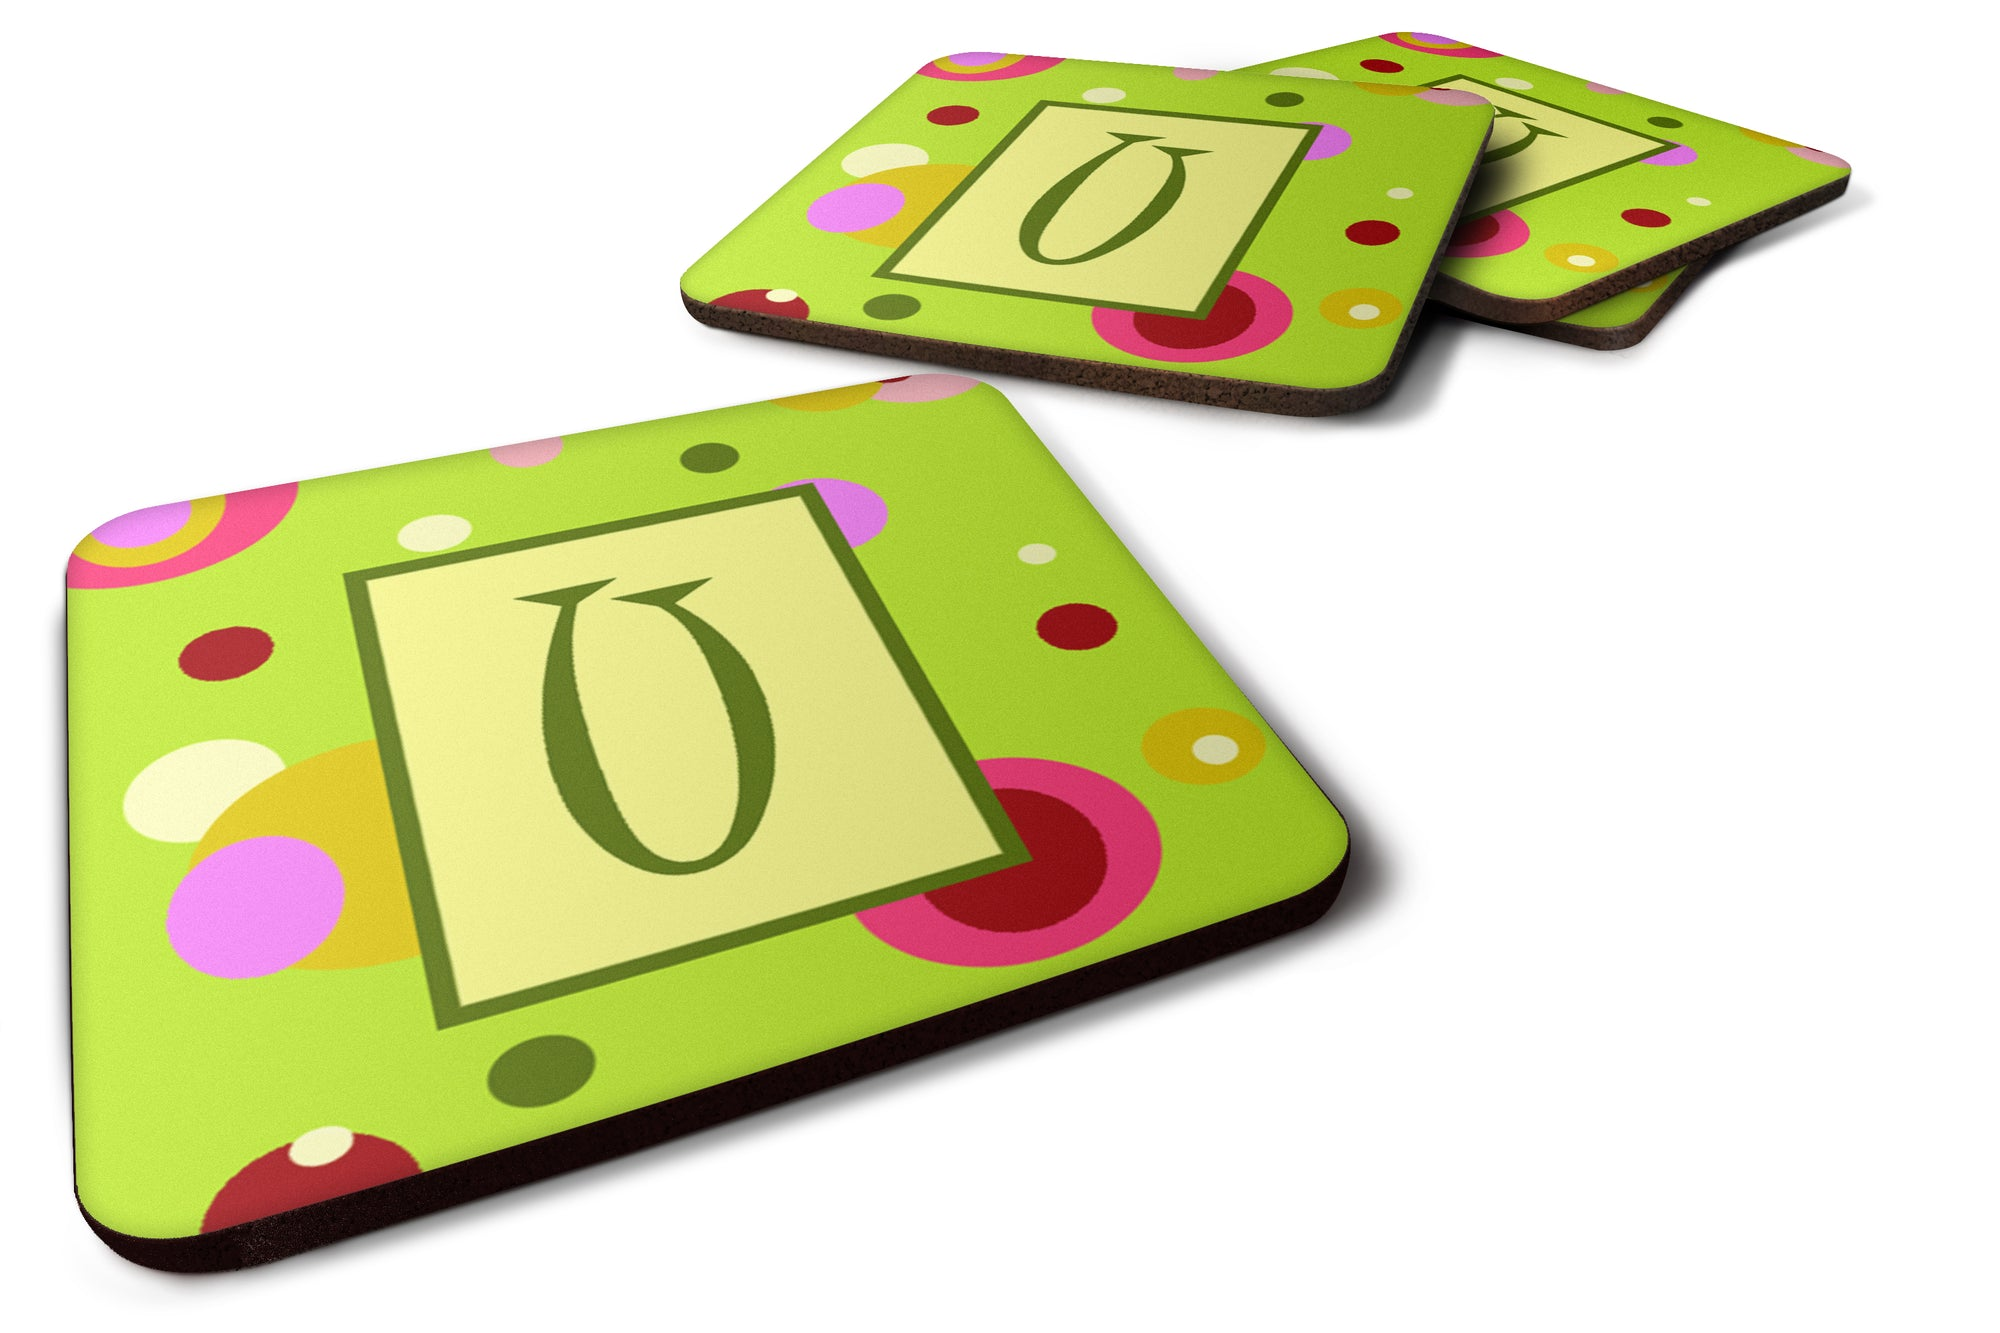 Set of 4 Monogram - Green Foam Coasters Initial Letter U by Caroline's Treasures